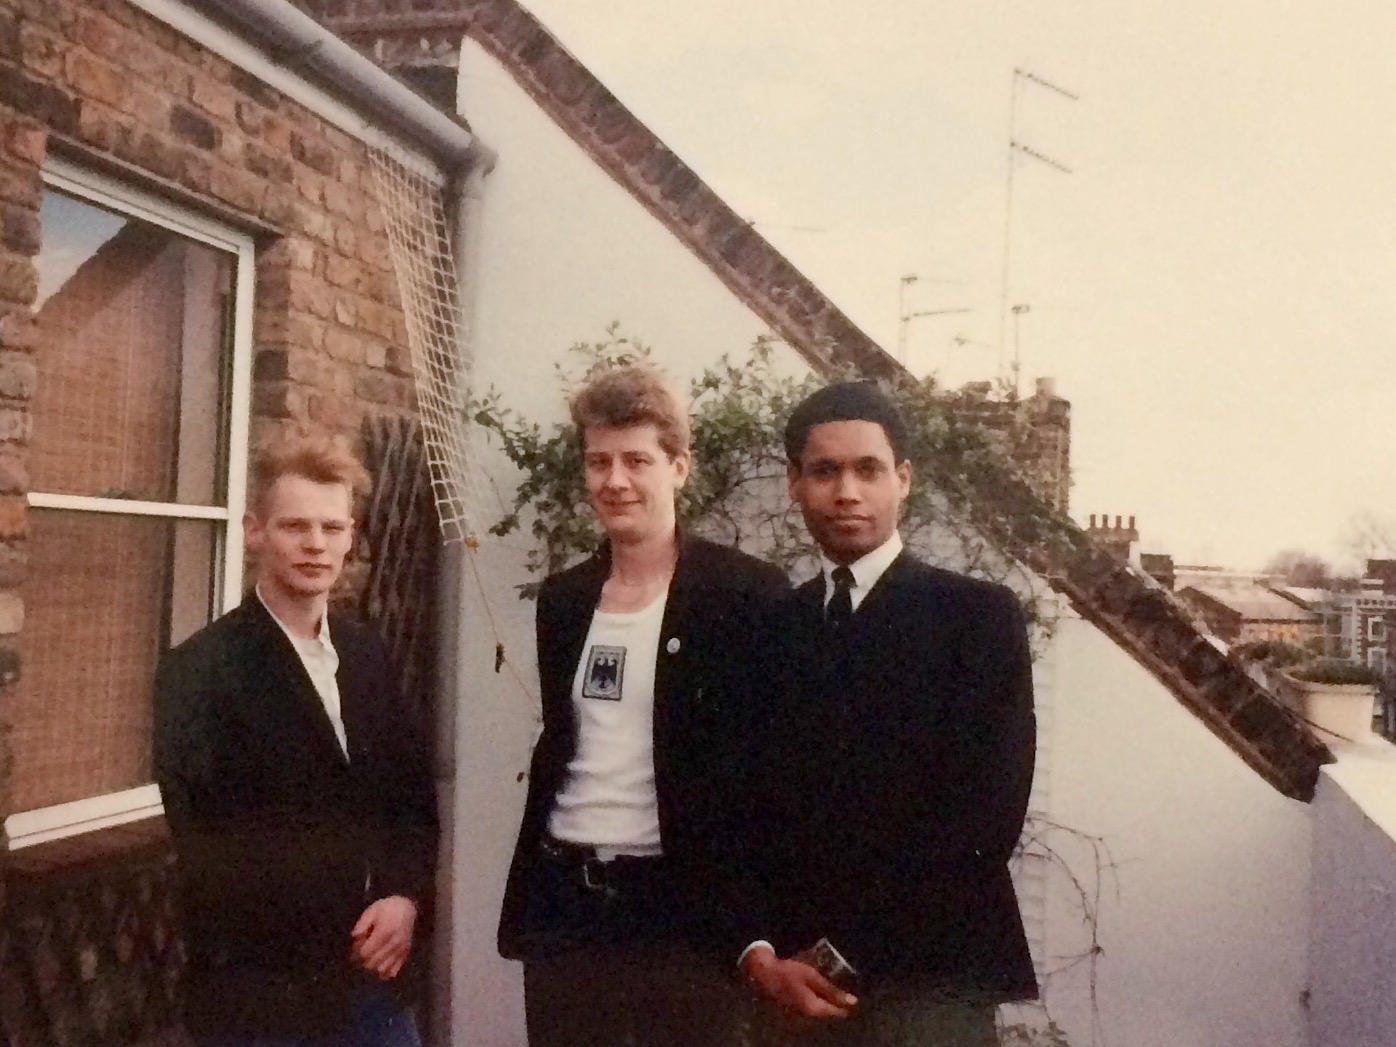 A couple dudes who auditioned with David (right) on his balcony in Primrose Hill